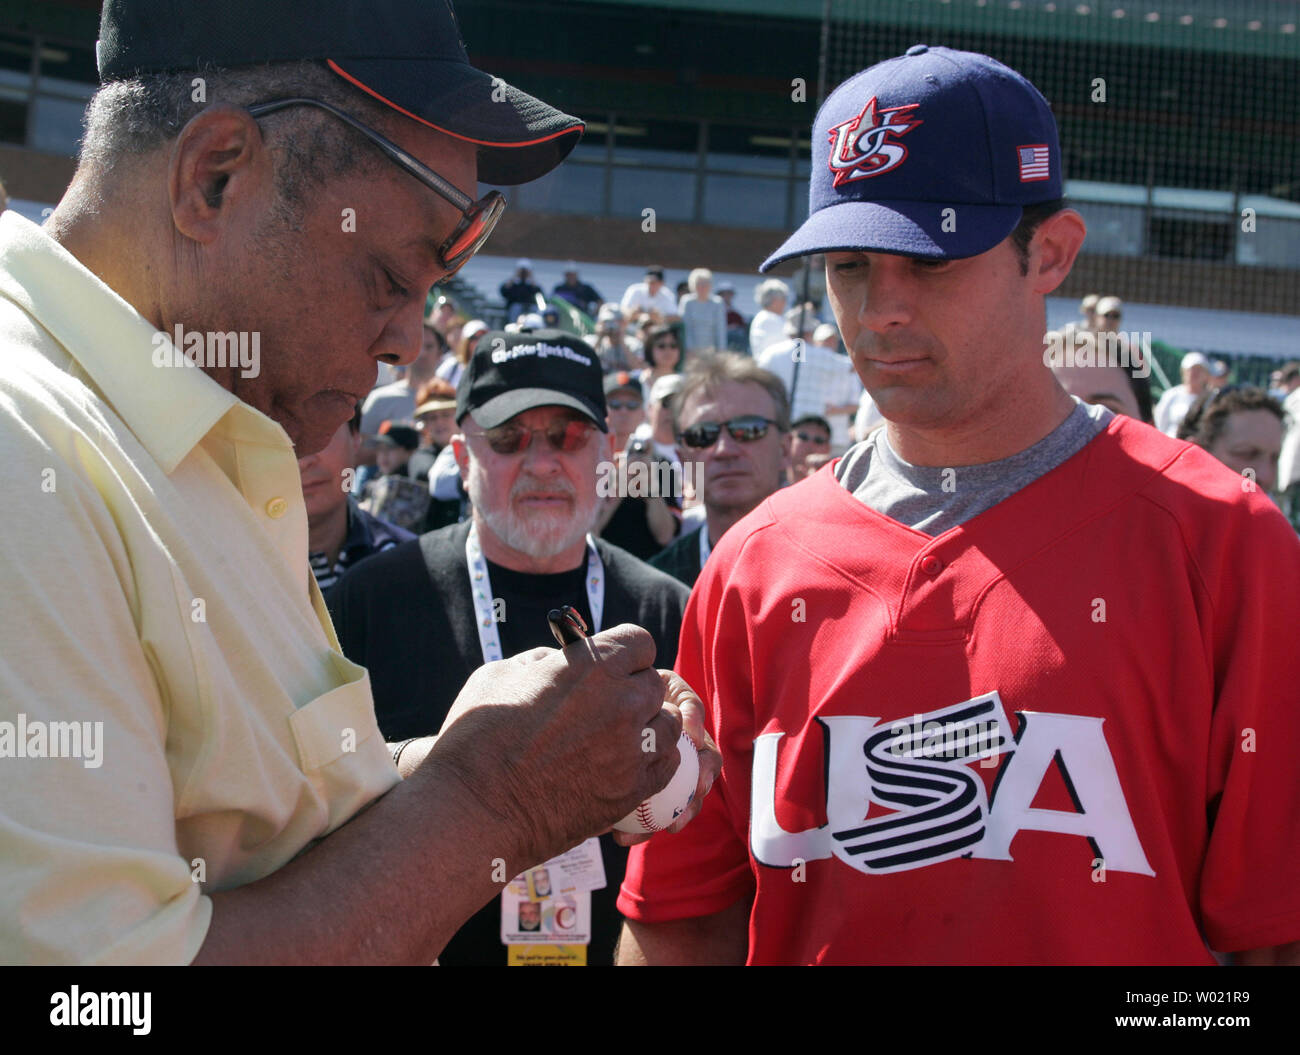 87ef960f Former San Francisco Giant outfielder Willie Mays signs an autograph for  Texas Ranger Michael Young before